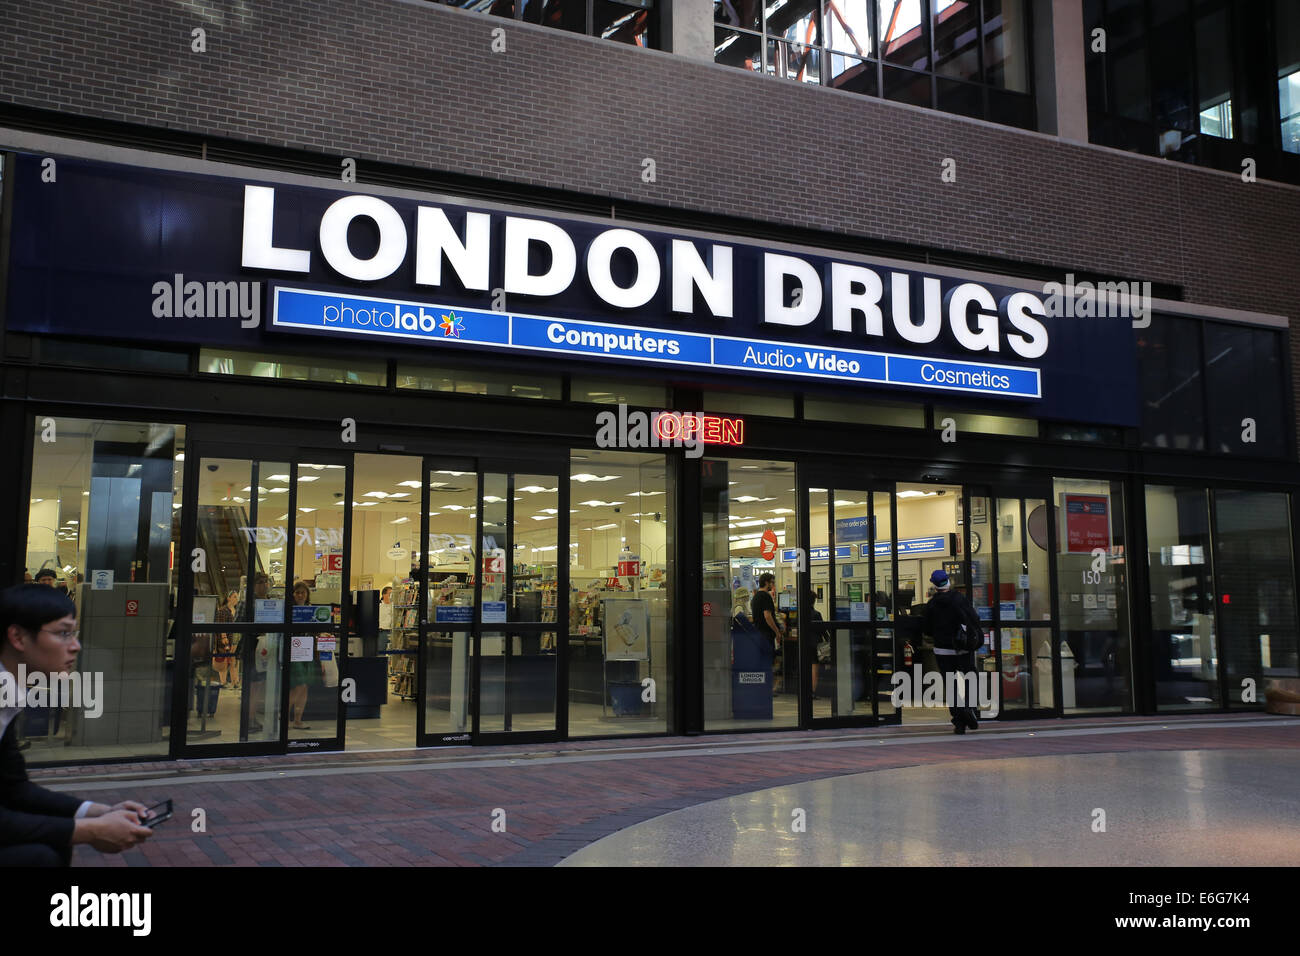 London drug store Vancouver - Stock Image